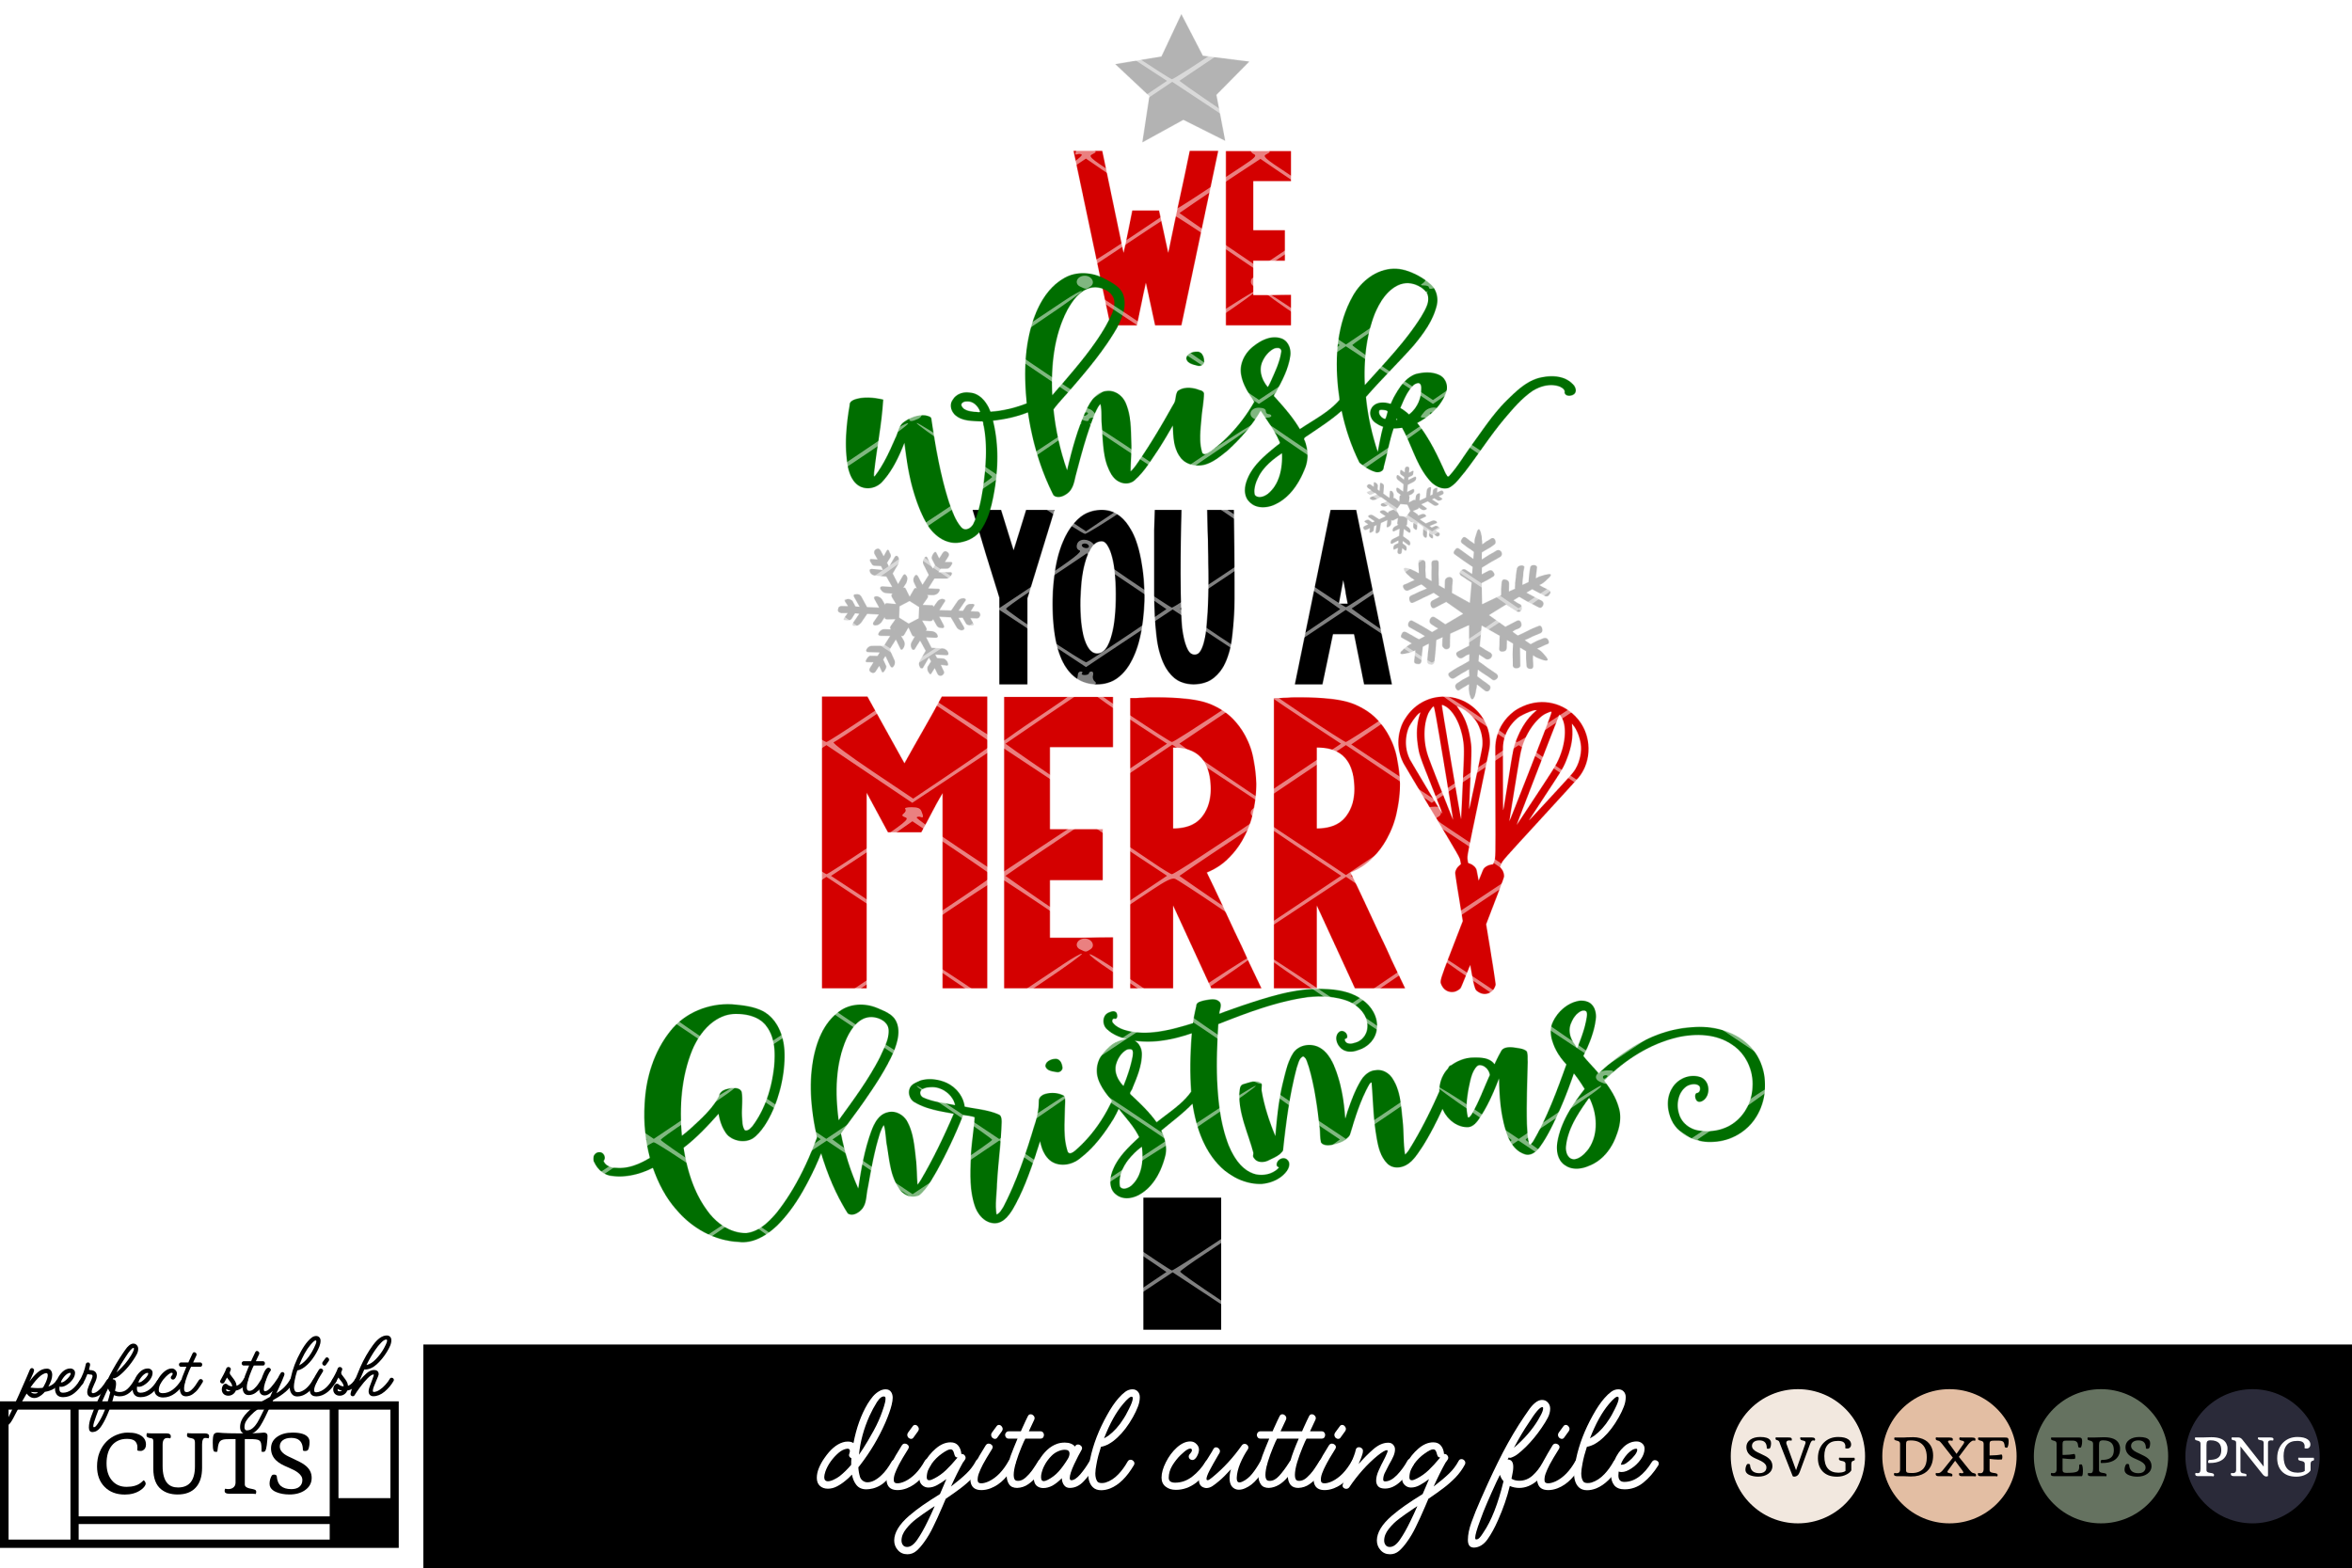 Christmas SVG We Whisk You A Merry Christmas SVG example